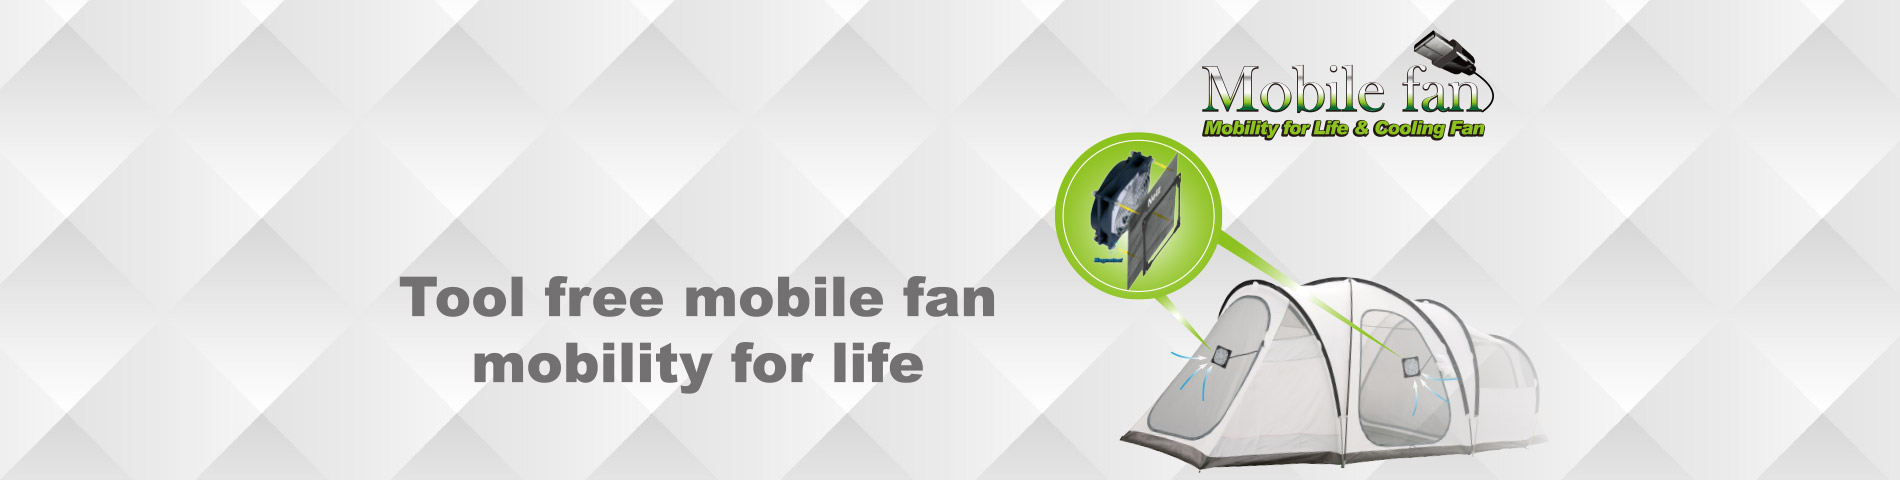 Mobile Cooing Fan Free from Tool and Heat